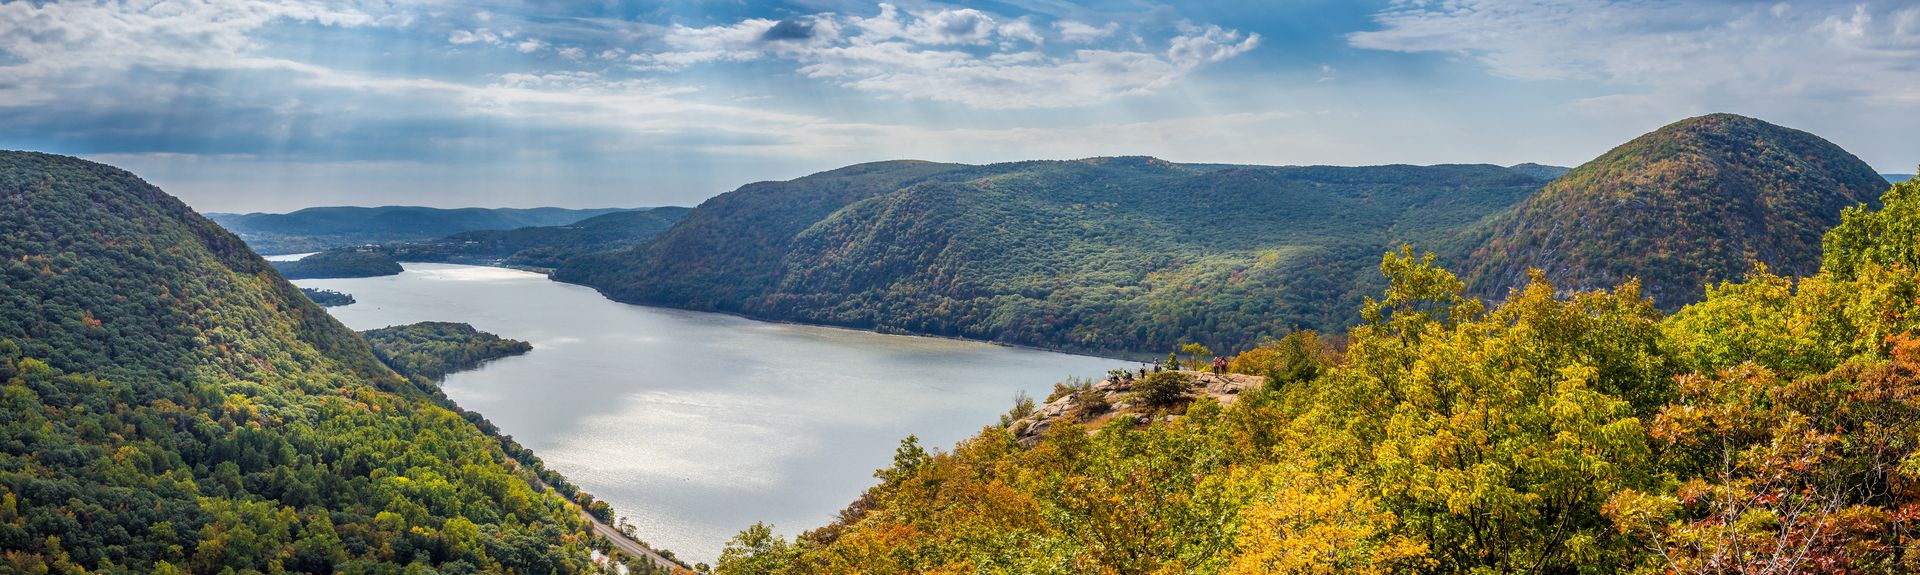 Hudson Valley, Nova York, Estados Unidos